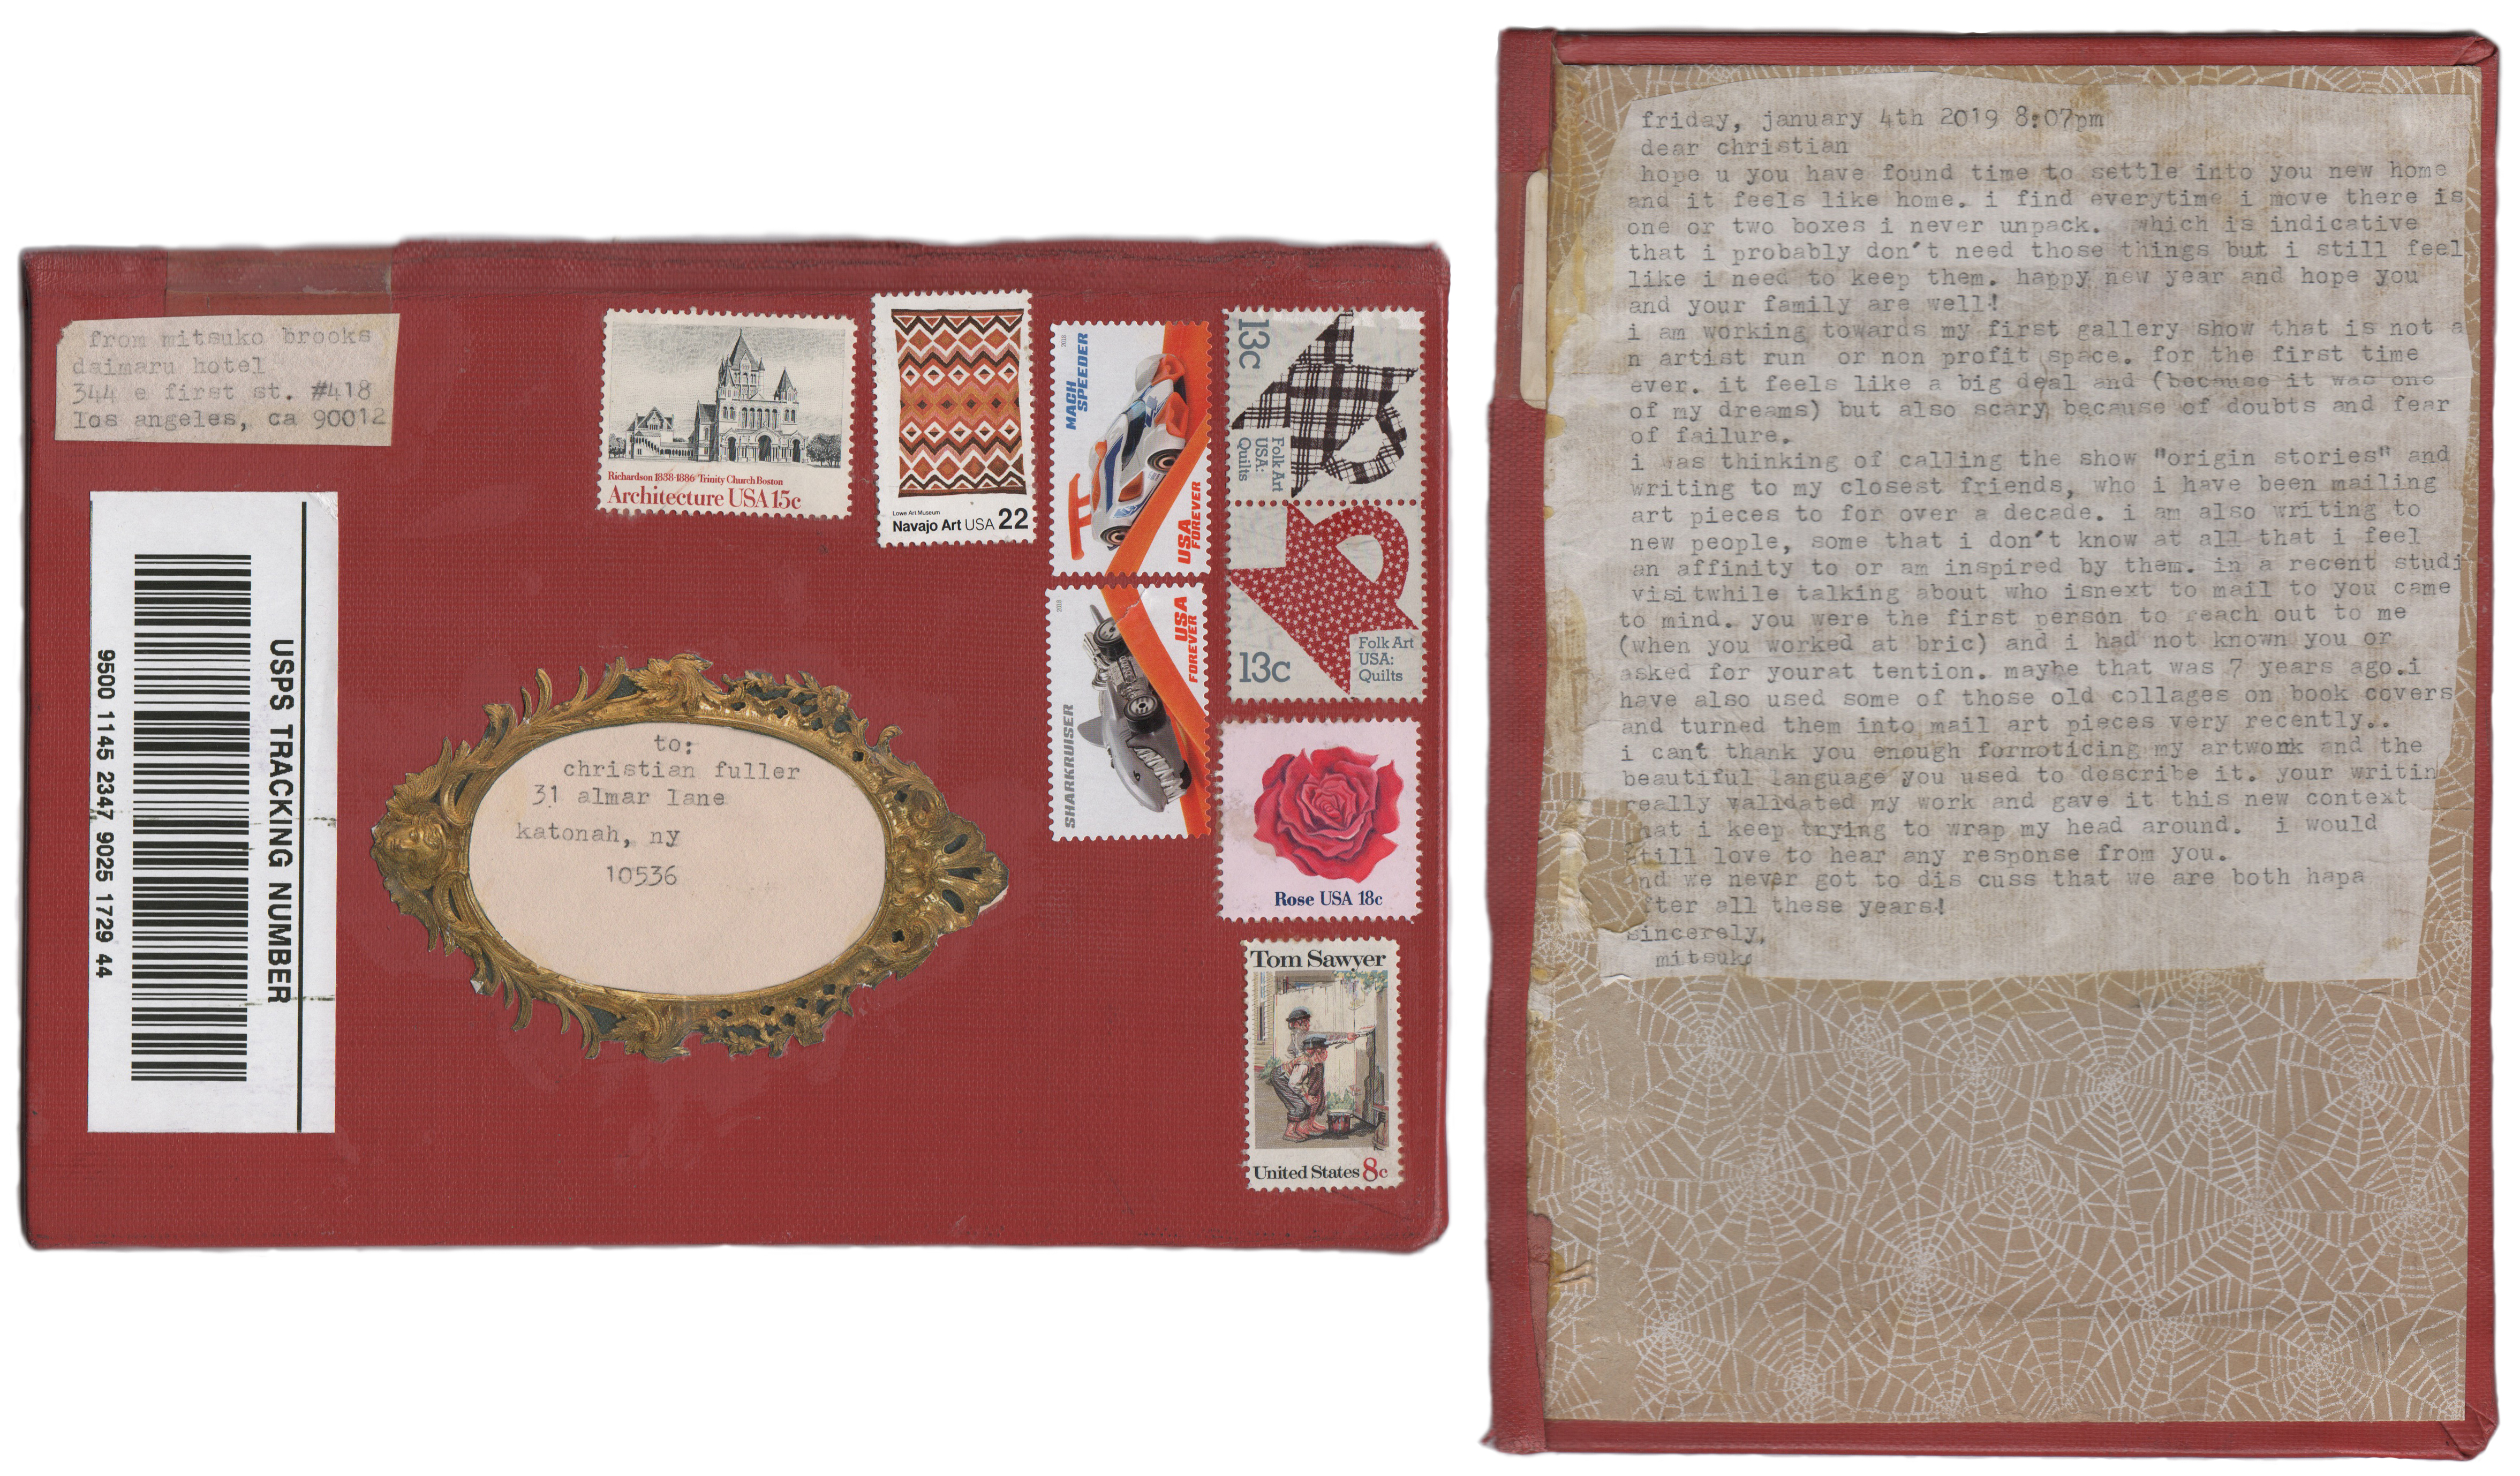 Mitsuko Brooks. <em>Mail to C.F., Jan. 19, 2019</em>, 2019. Ink, postage stamps, and paper collaged onto detached book cover, 8 7/8 x 6 1/4 inches (22.5 x 16 cm)